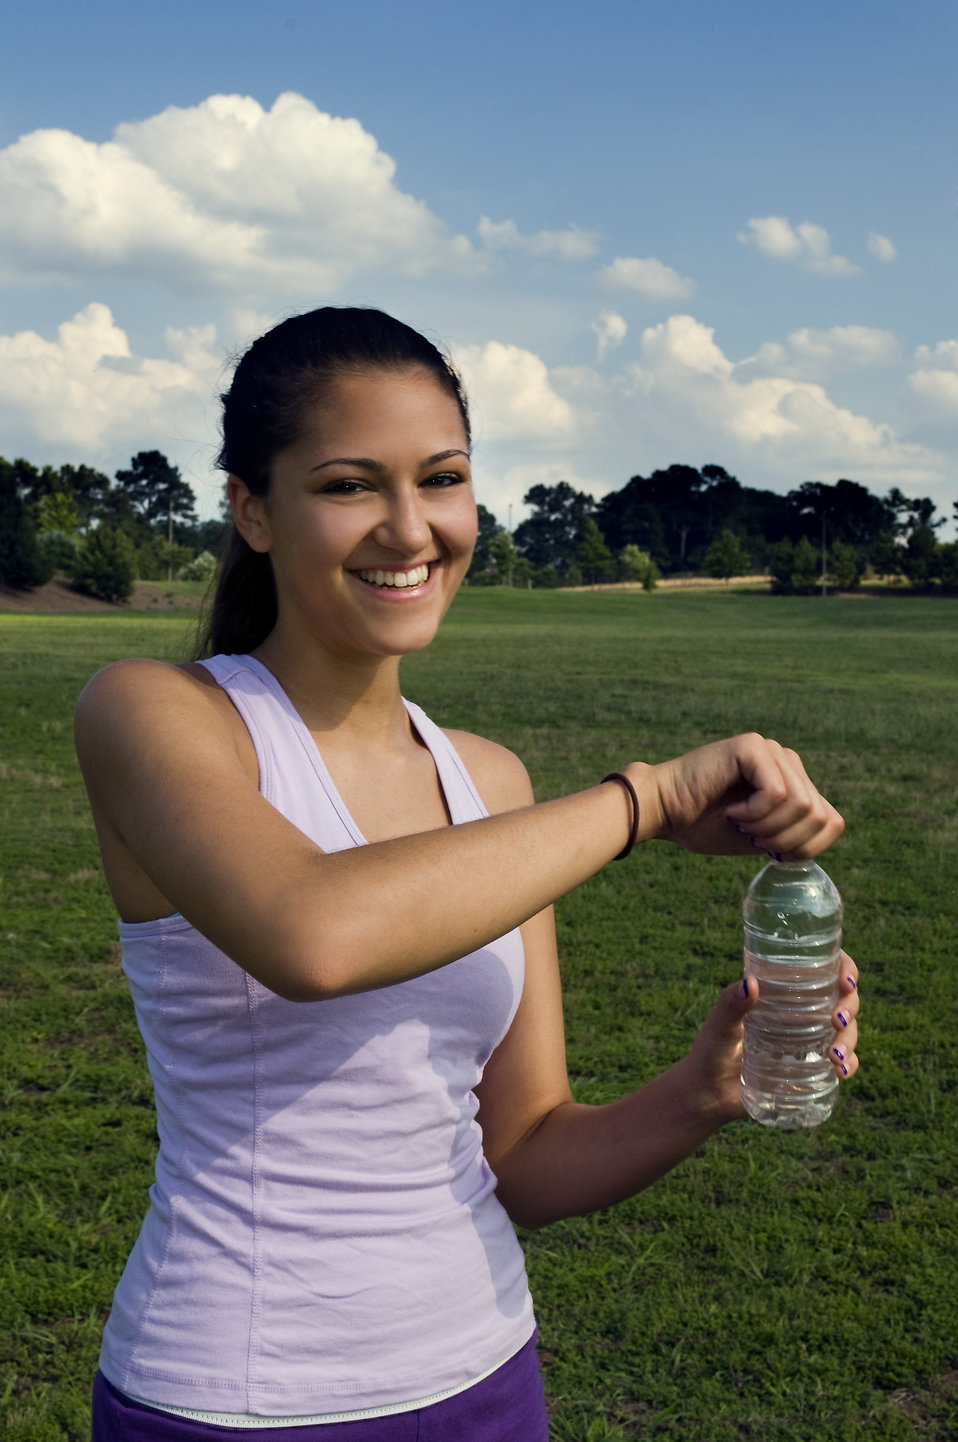 A young woman drinking bottled water outdoors before exercising : Free Stock Photo